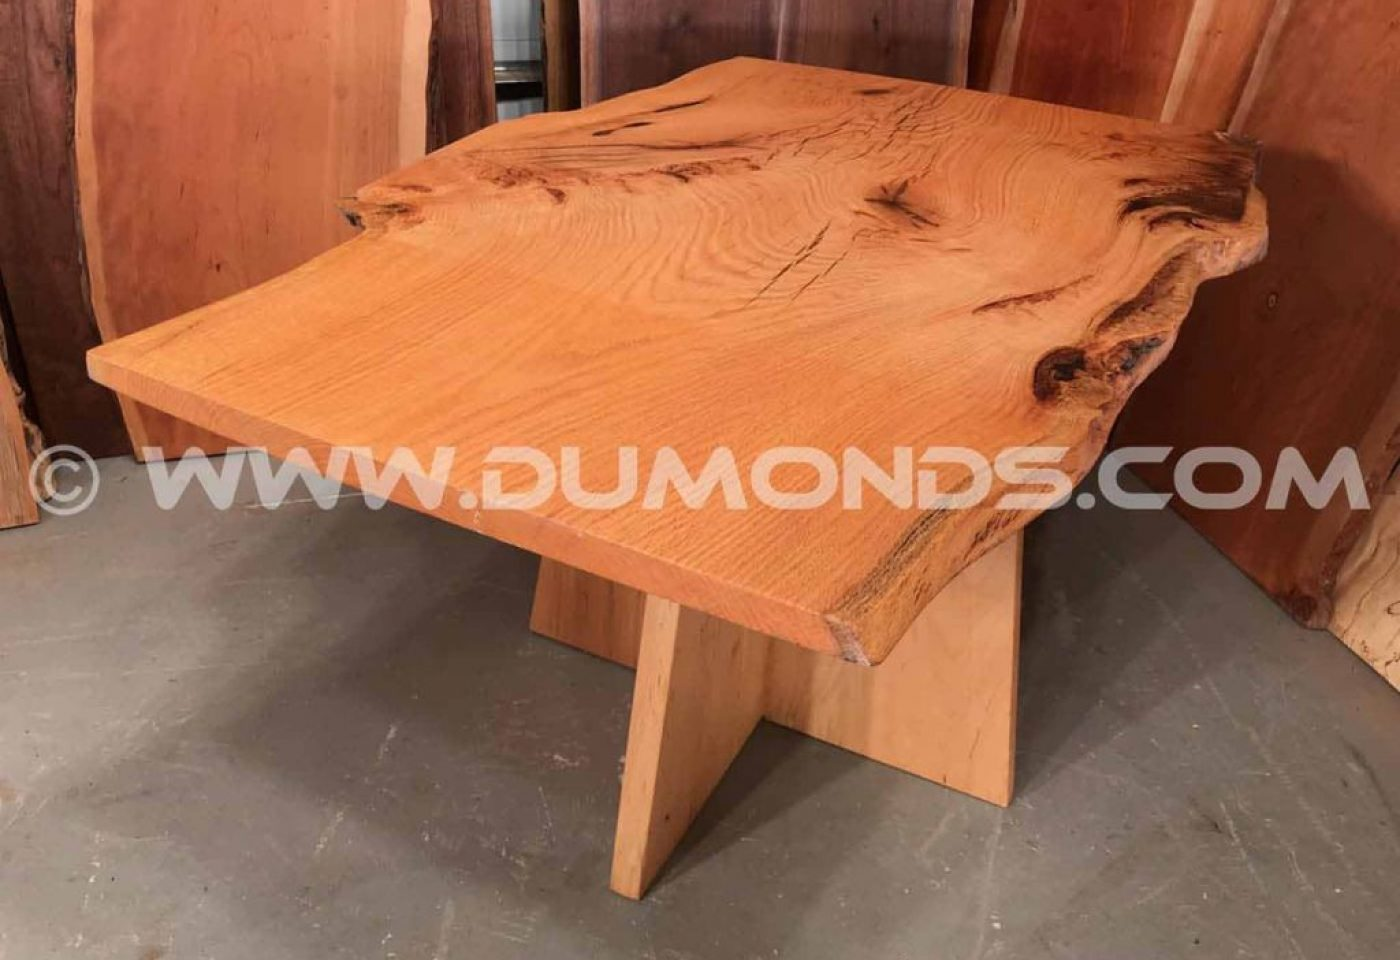 OAK TABLE WITH MAPLE PEDESTAL BASE